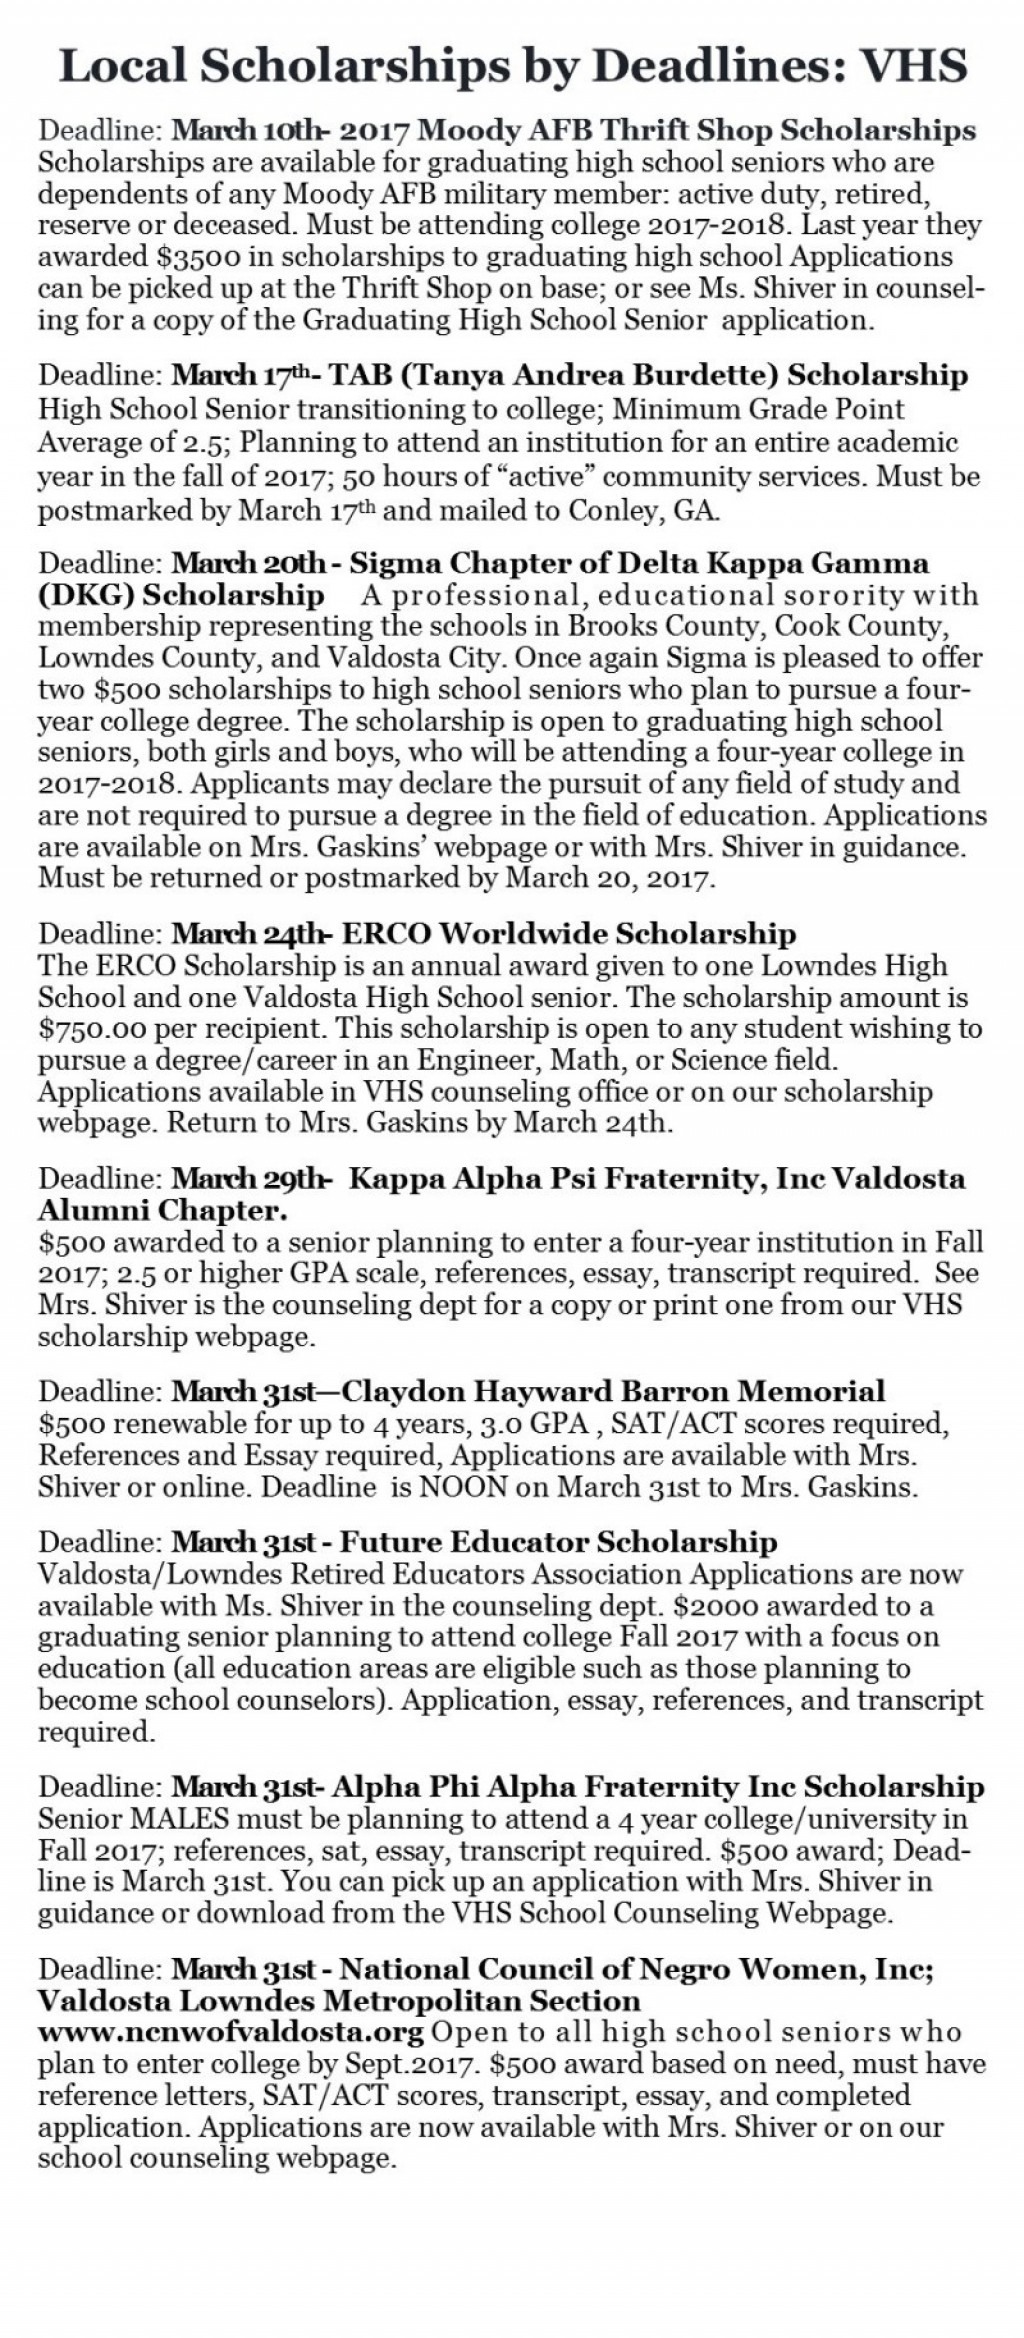 012 Shorty Scholarships Withys For High School Seniors Poemsrom Co Tinetby5eqpfuhec2cd5mlc30c12uavsxxp5rodkzqo In California Texas Class Of Free No Amazing Short Essay College Easy Large